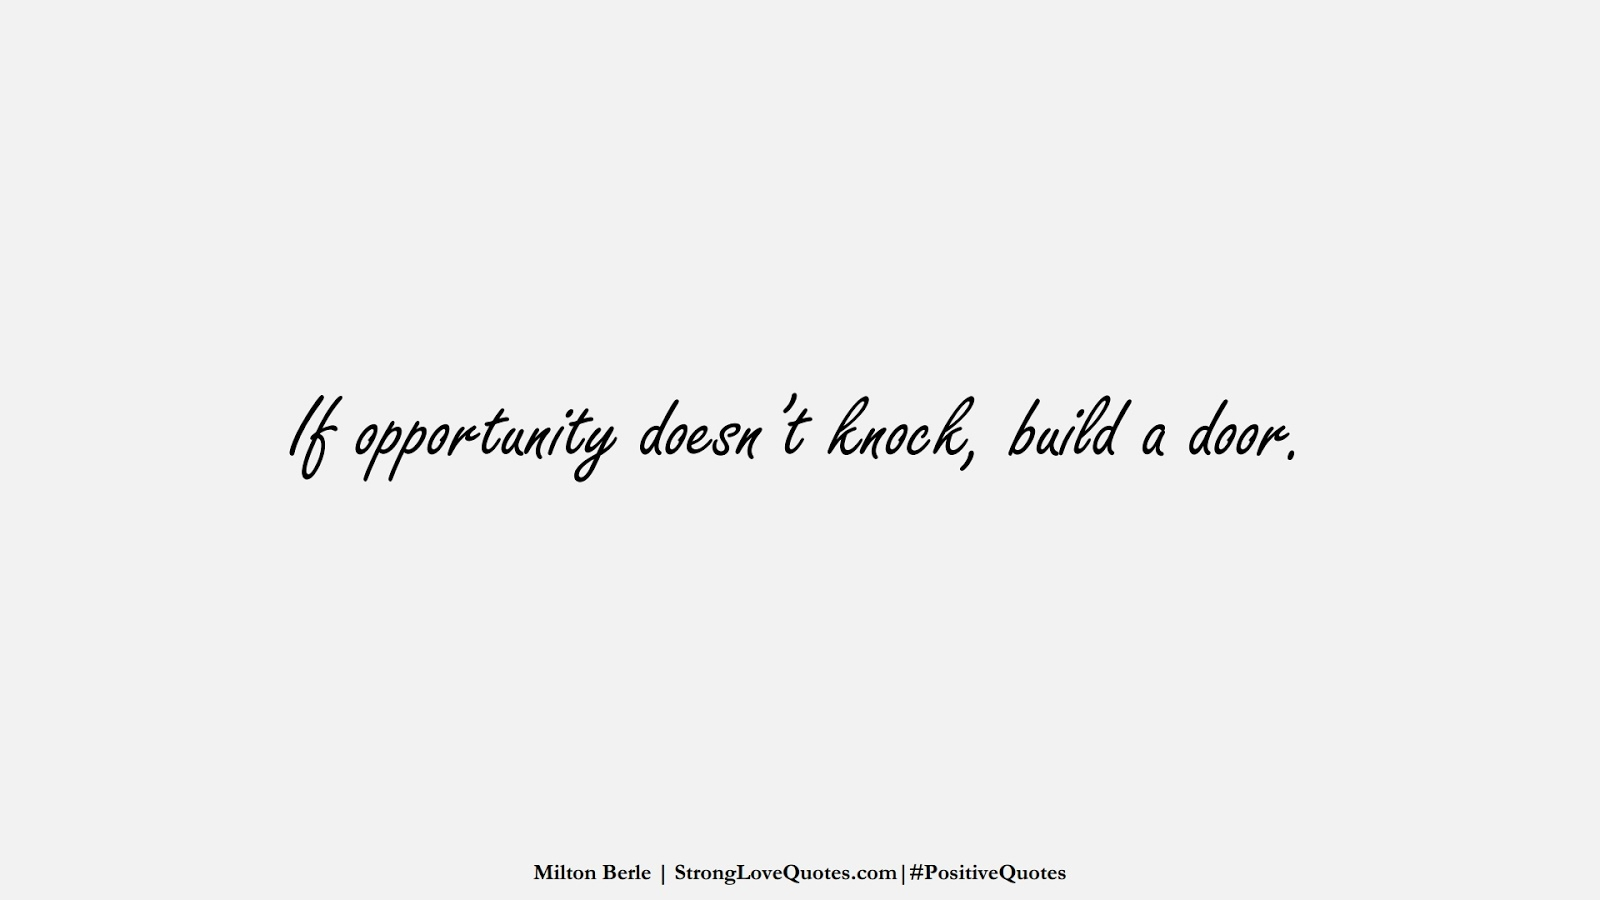 If opportunity doesn't knock, build a door. (Milton Berle);  #PositiveQuotes